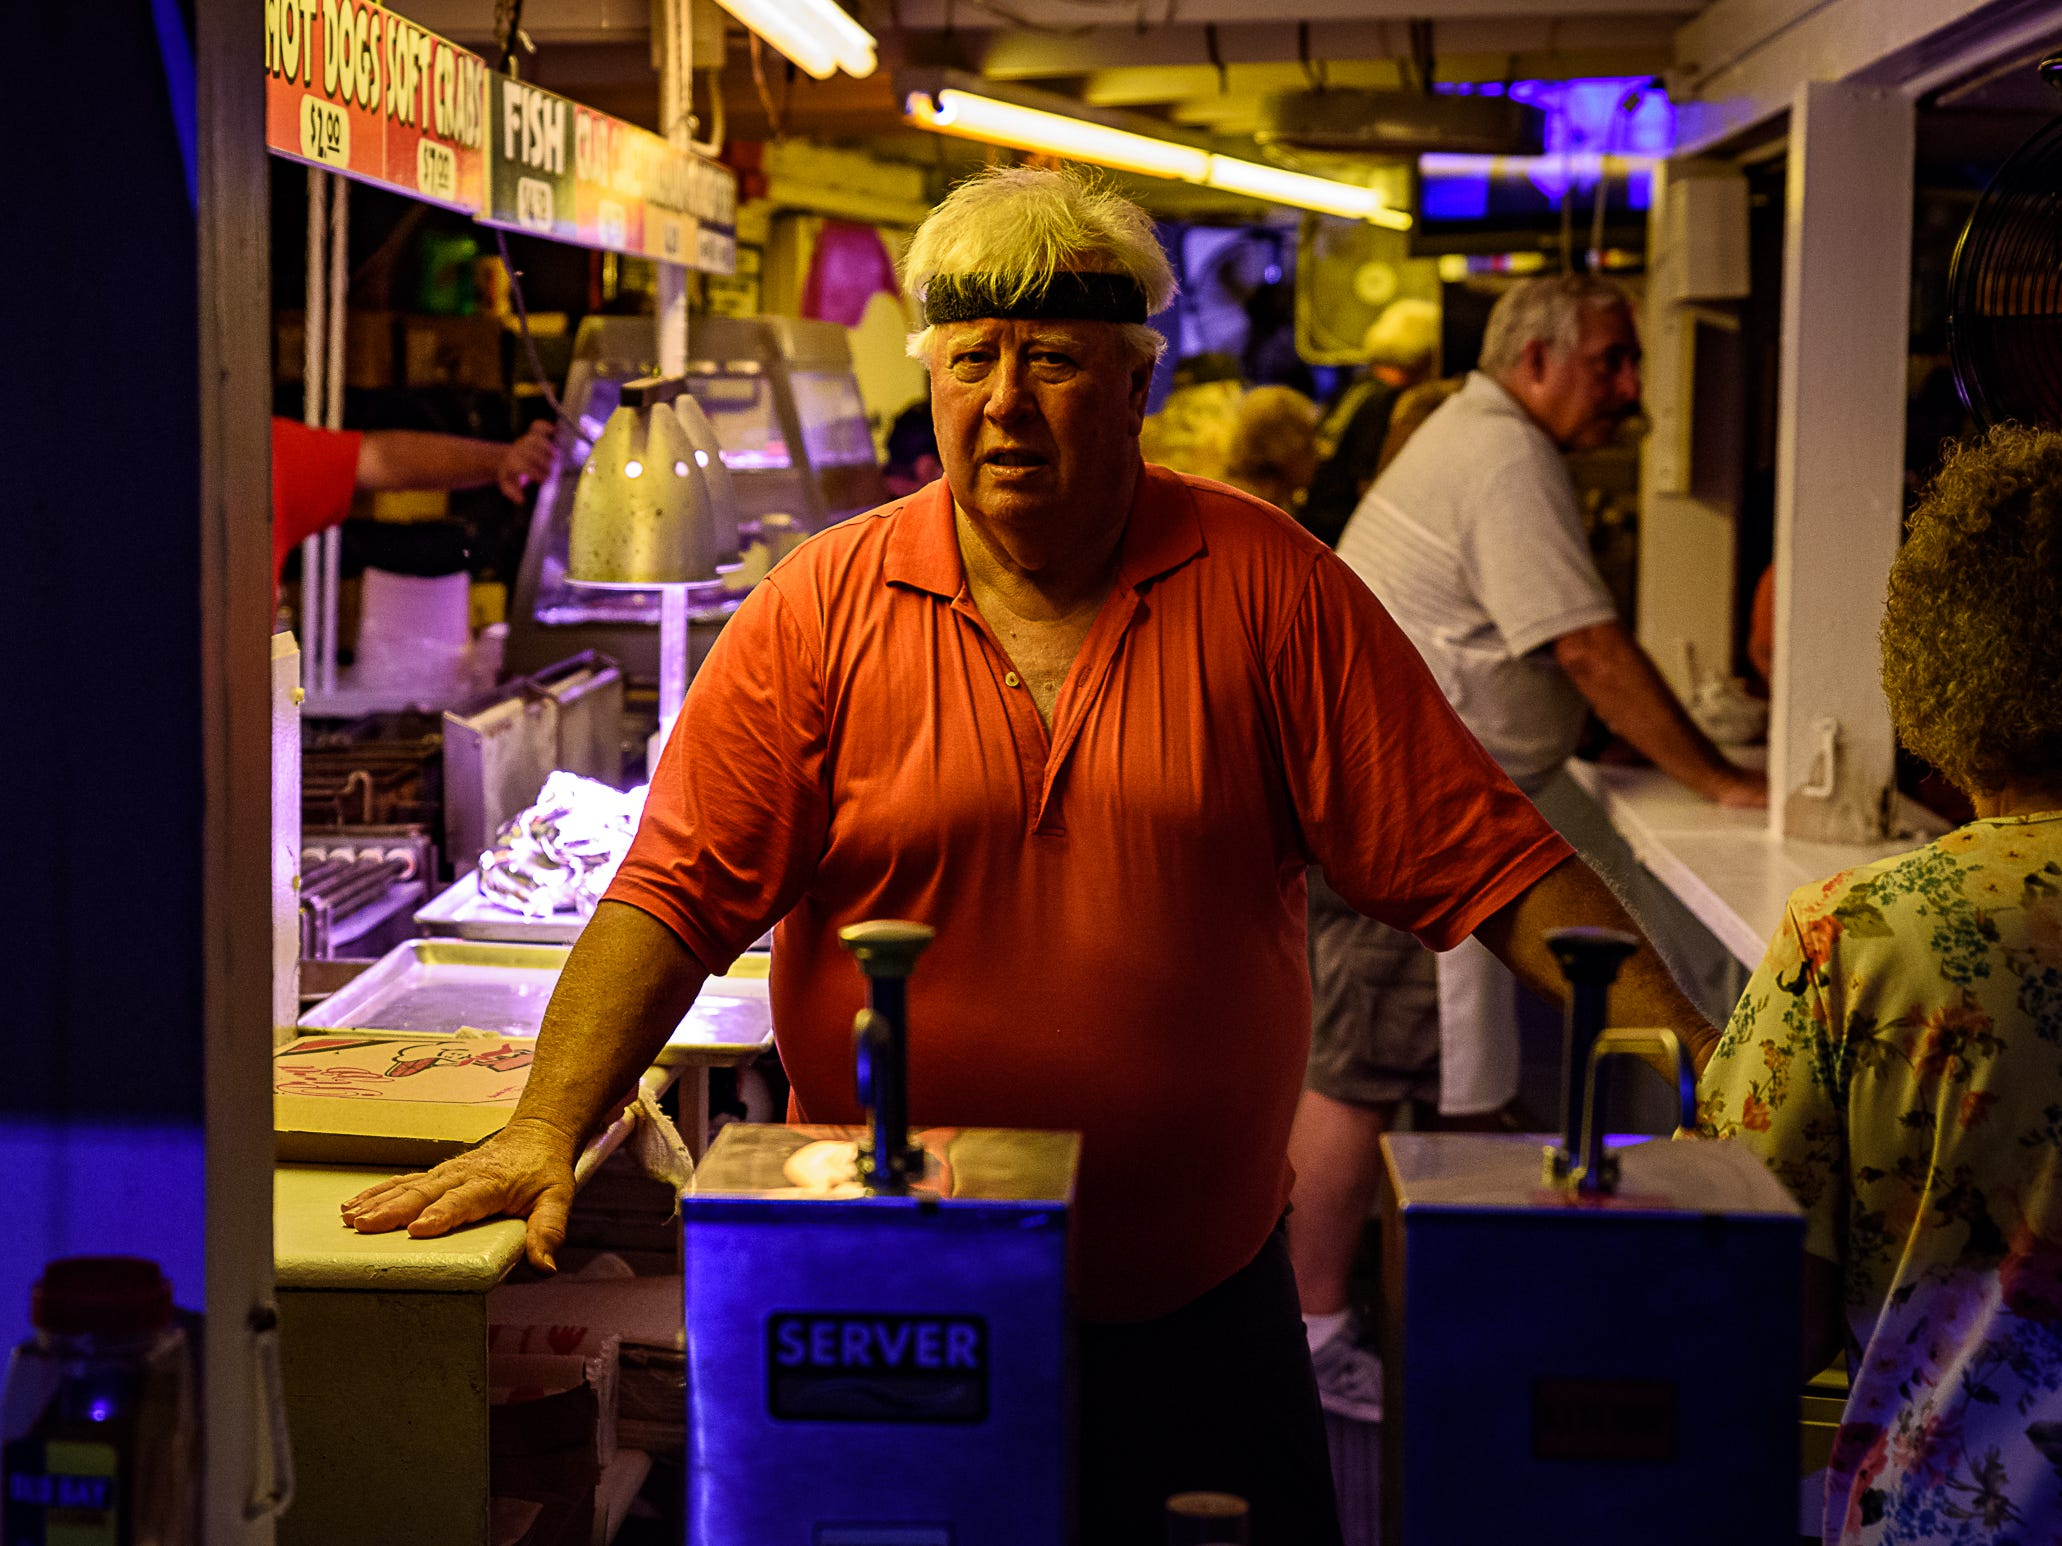 A volunteer at one of the food booths at the Chincoteague Fireman's Carnival.